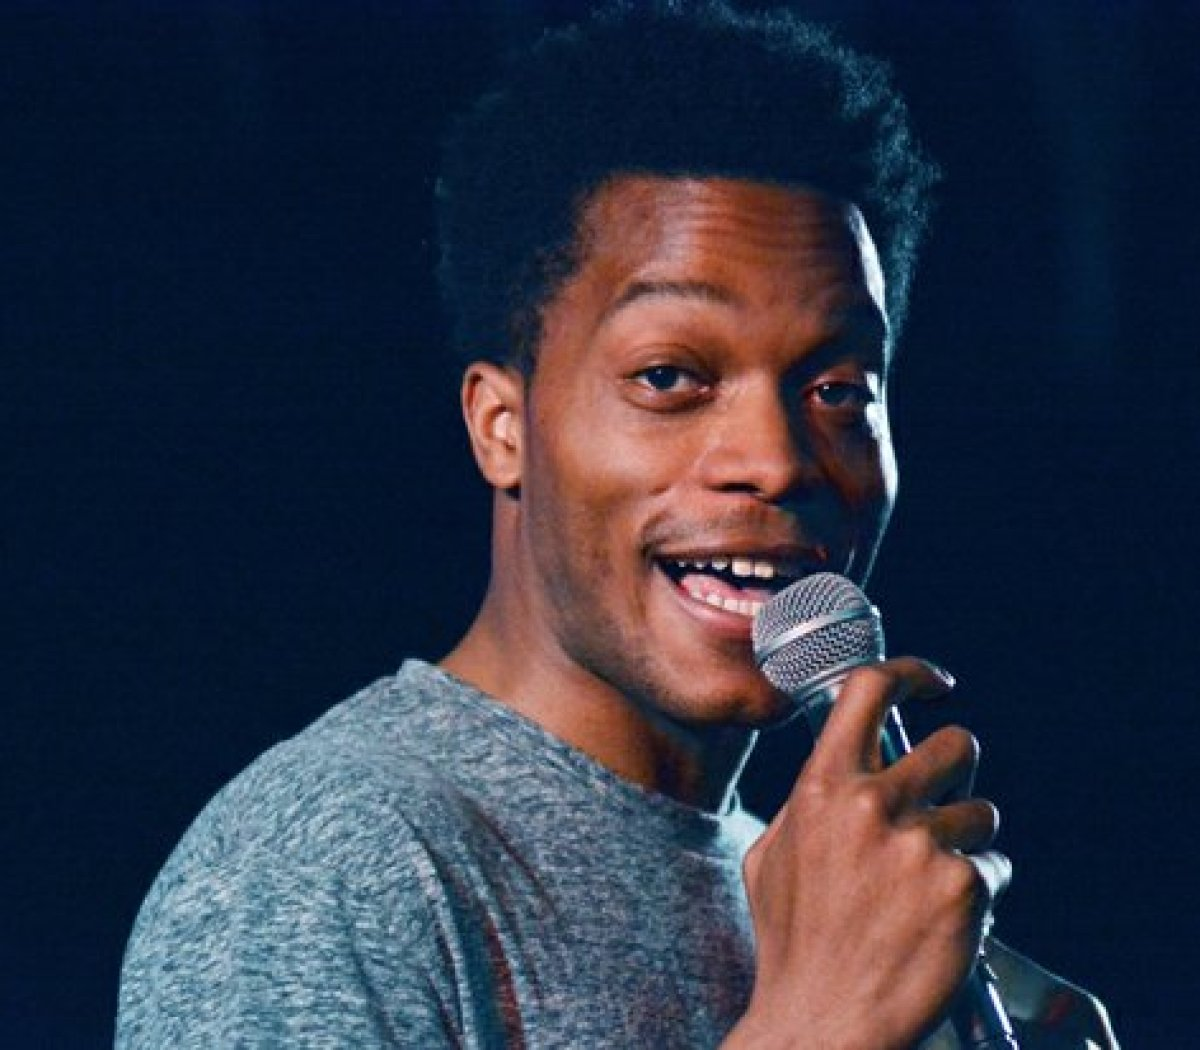 Comedian and DC native Jermaine Fowler, performs during the Inaugural 202 Comedy Festival at the Black Cat, Saturday, April 16, 2016. /Photo by Patricia Little @5feet2